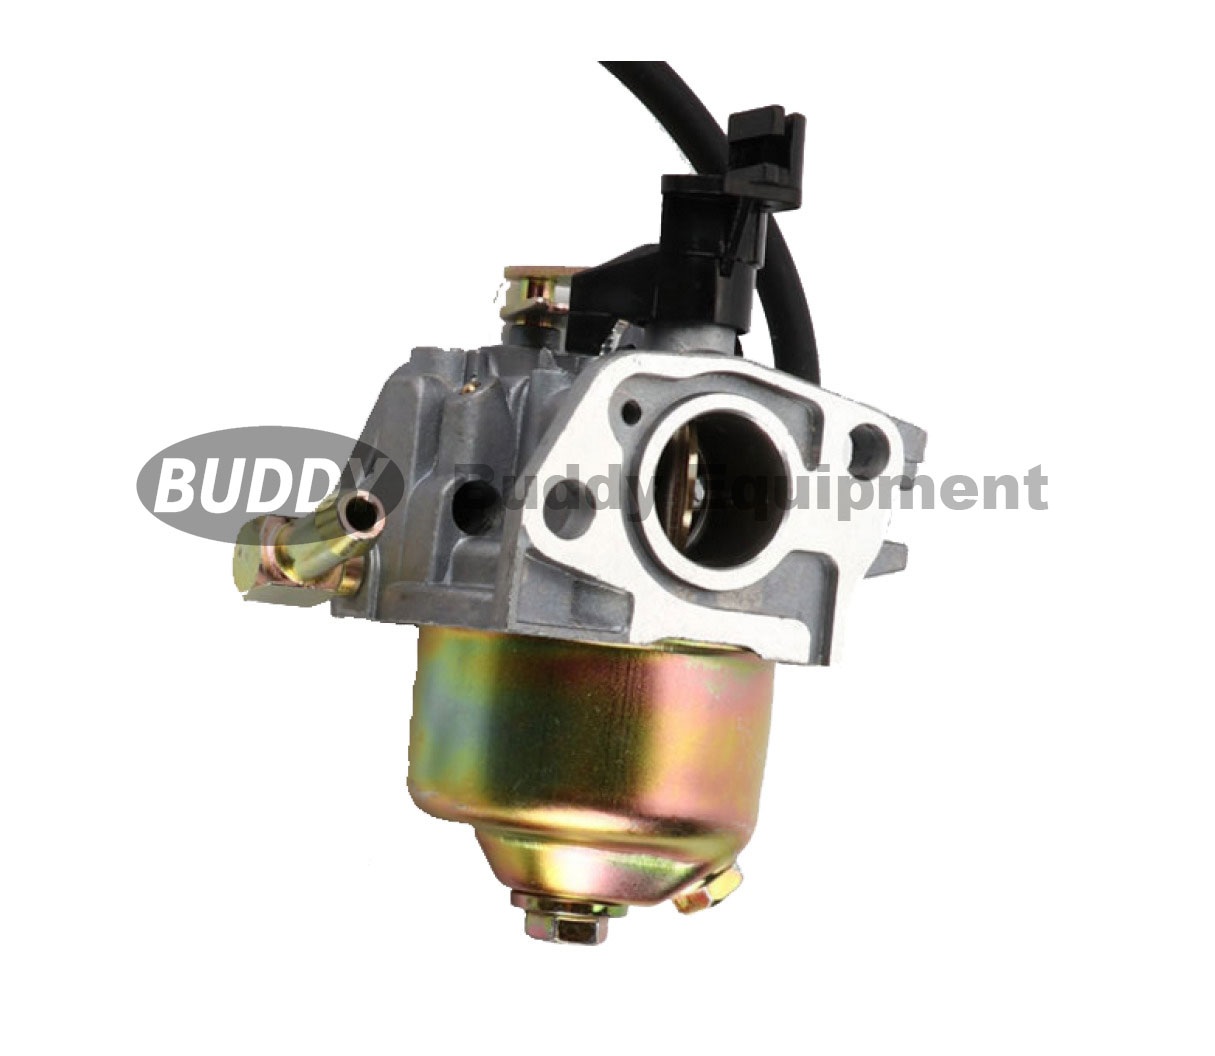 58120 - MTD, Cub Cadet Snow Blower Carburetor – Buddy Equipment